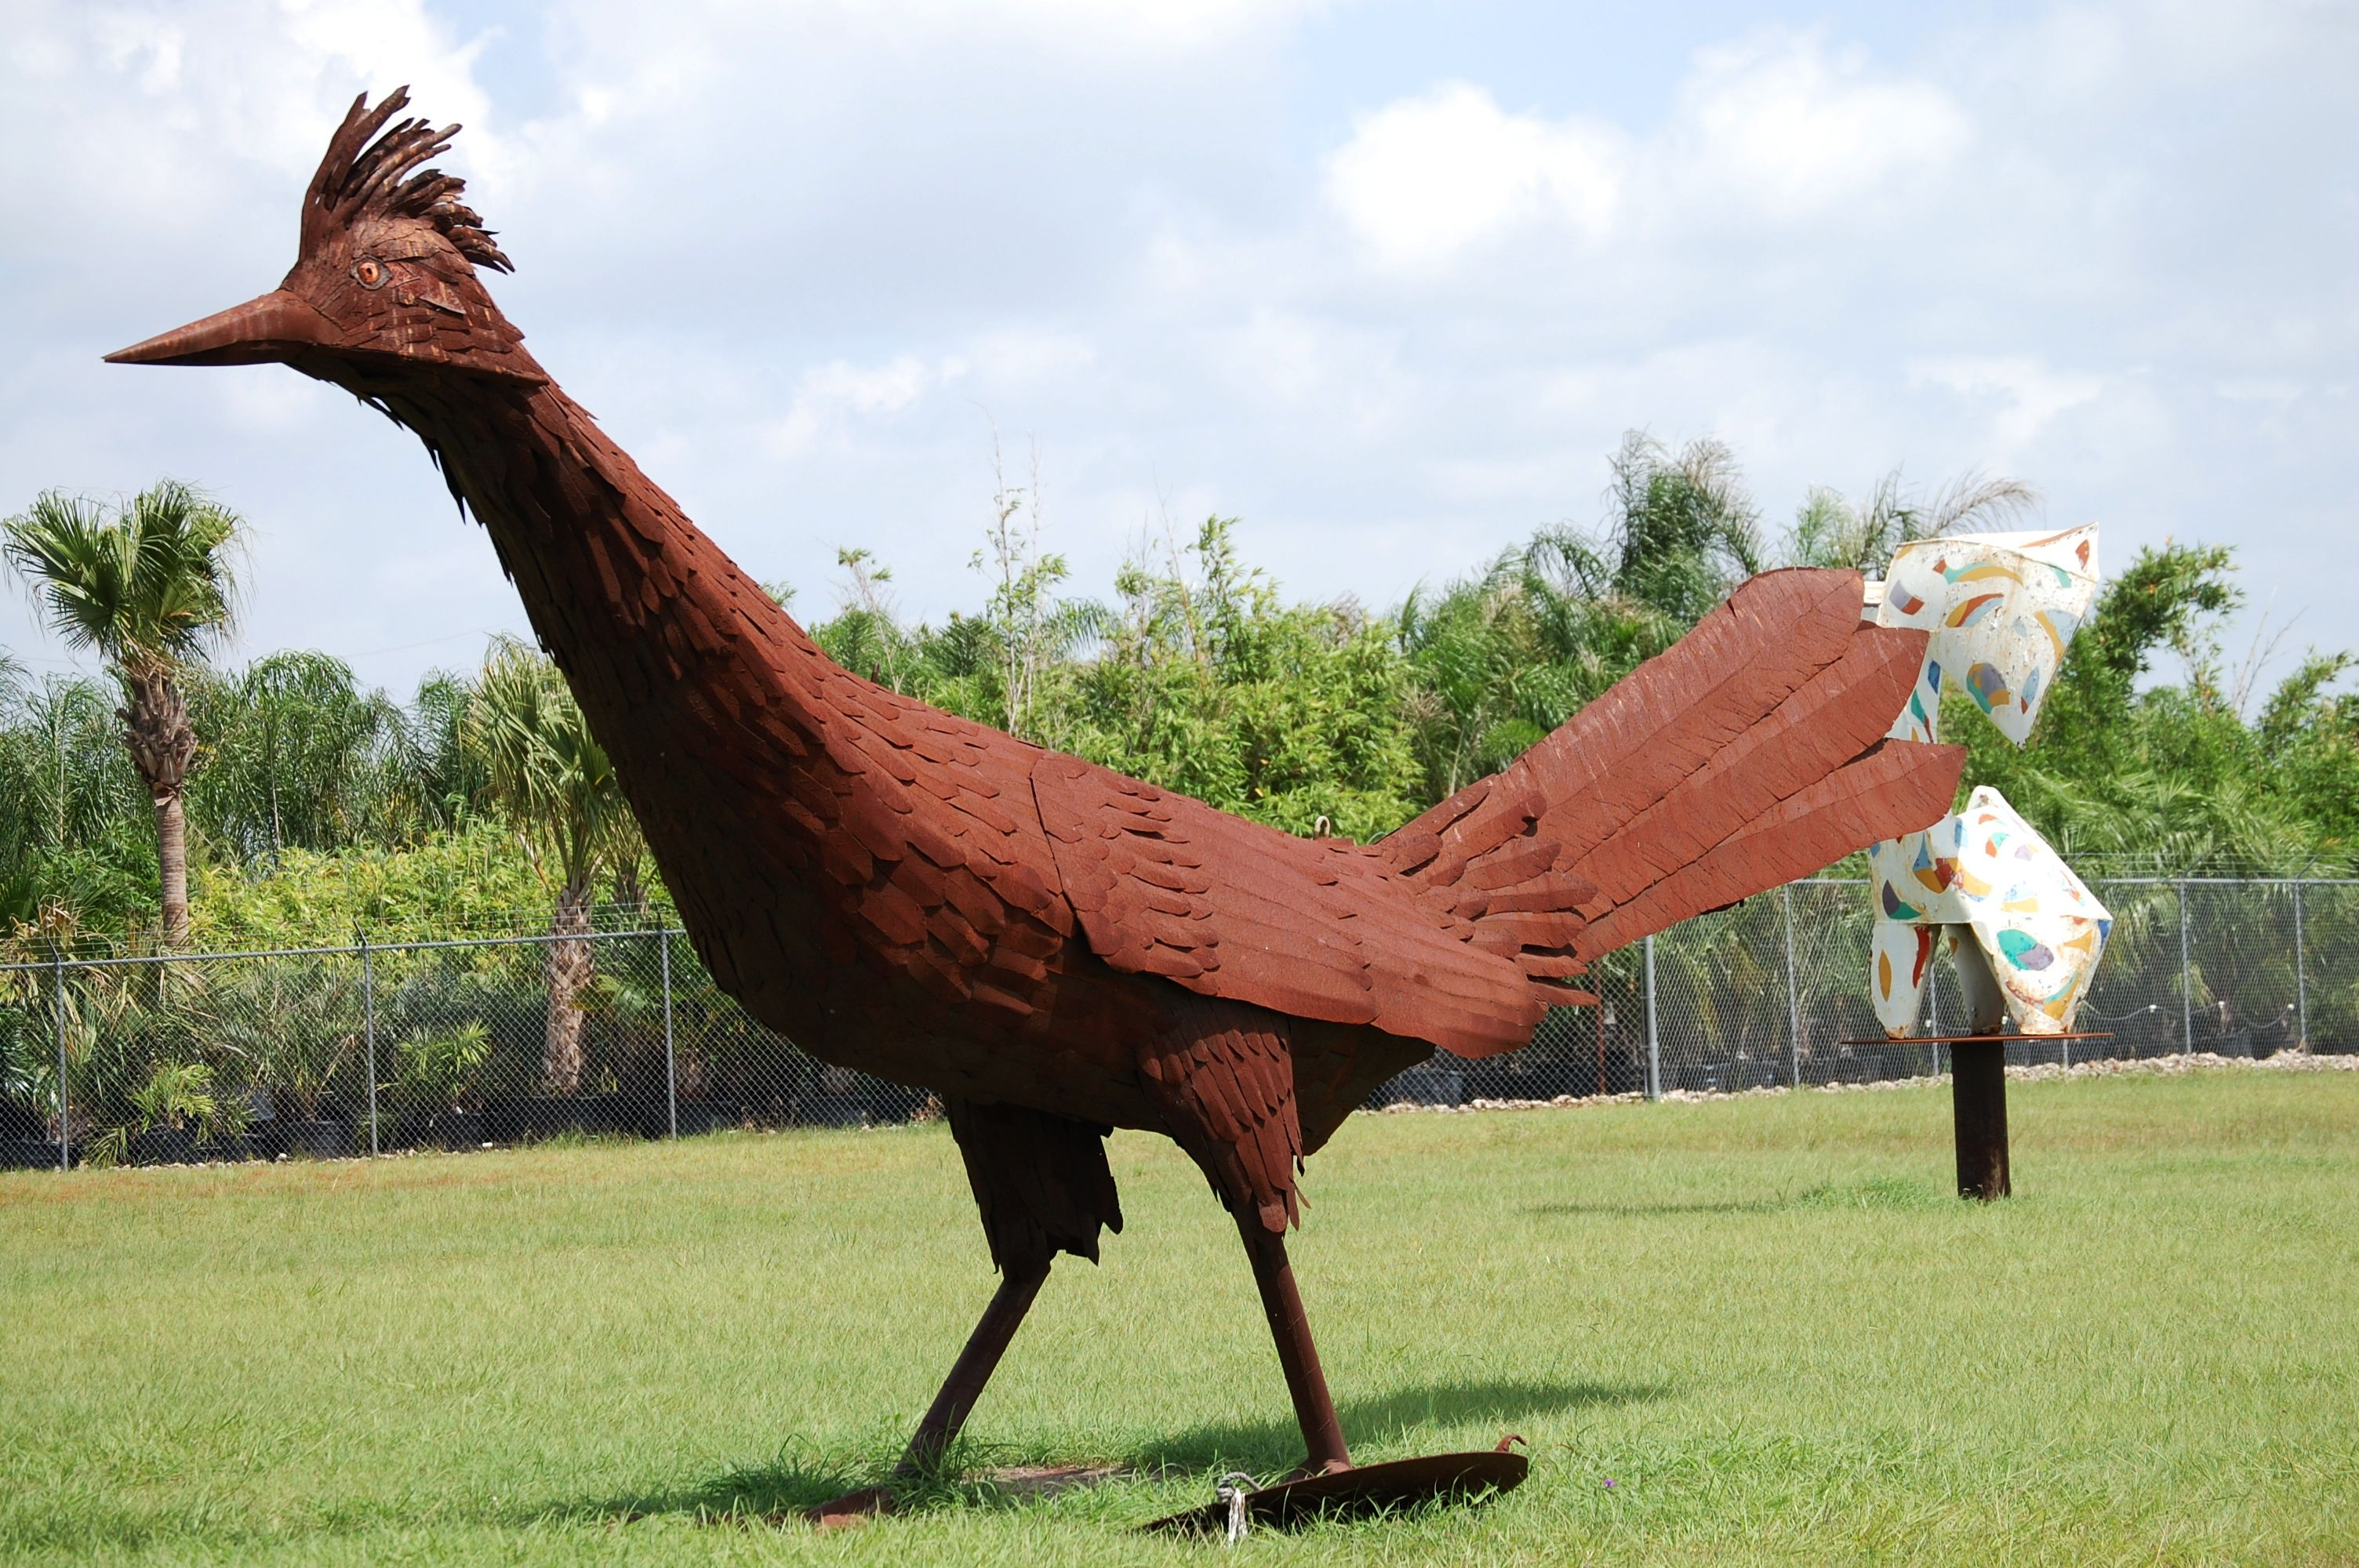 Giant roadrunner - one of many giant scrap metal animals at